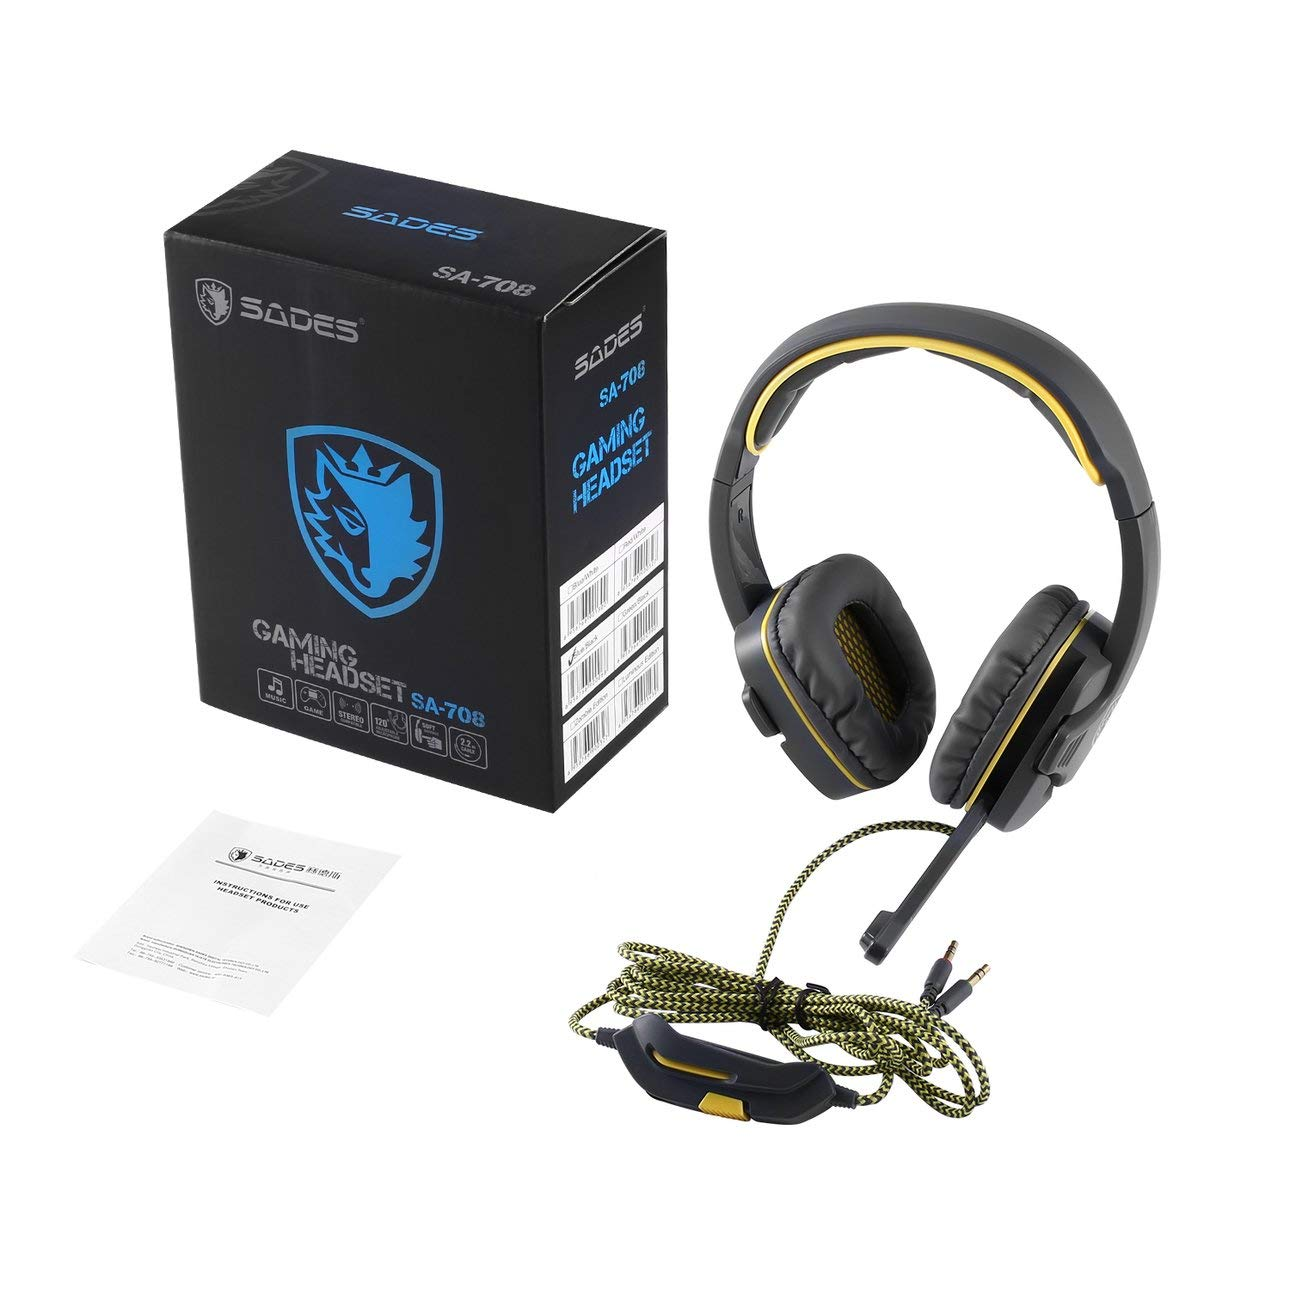 Liobaba Gaming Headsets with Microphone Stereo Wired Earphone Noise-Canceling for Computer PC Gamer Fit for SADES SA708